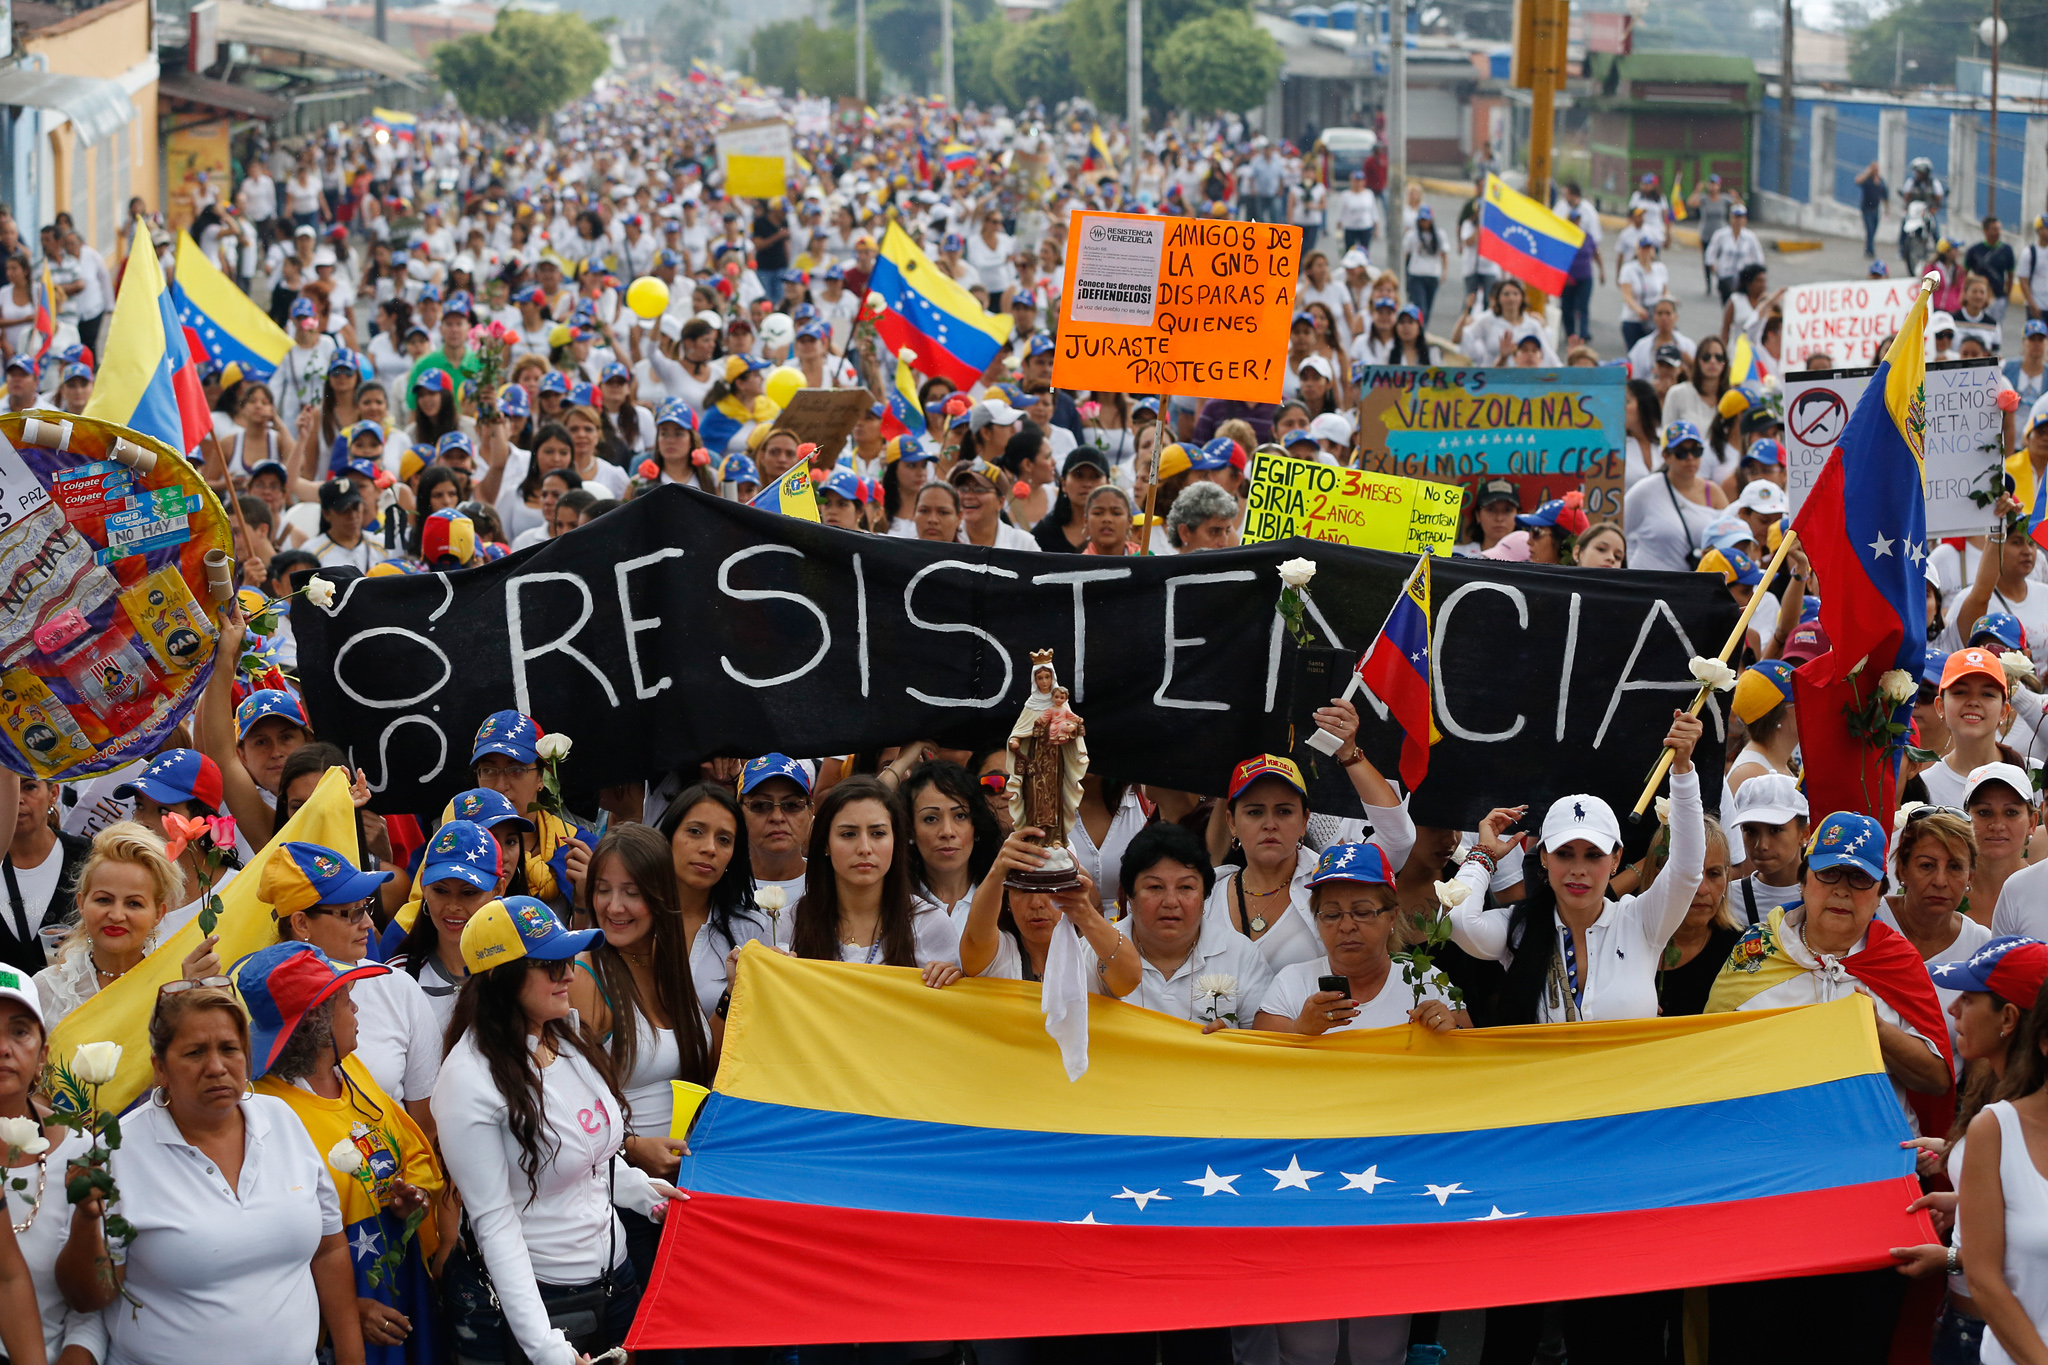 "Opposition demonstrators take part in a women's rally against Nicolas Maduro's government in San Cristobal, about 410 miles (660 km) southwest of Caracas, February 26, 2014. Pope Francis called on Wednesday for an end to violence in Venezuela that has killed at least 13 people and urged politicians to take the lead in calming the nation's worst unrest for a decade. The banner reads: ""Resistance"". REUTERS/Carlos Garcia Rawlins (VENEZUELA - Tags: POLITICS CIVIL UNREST) - RTR3FR40"